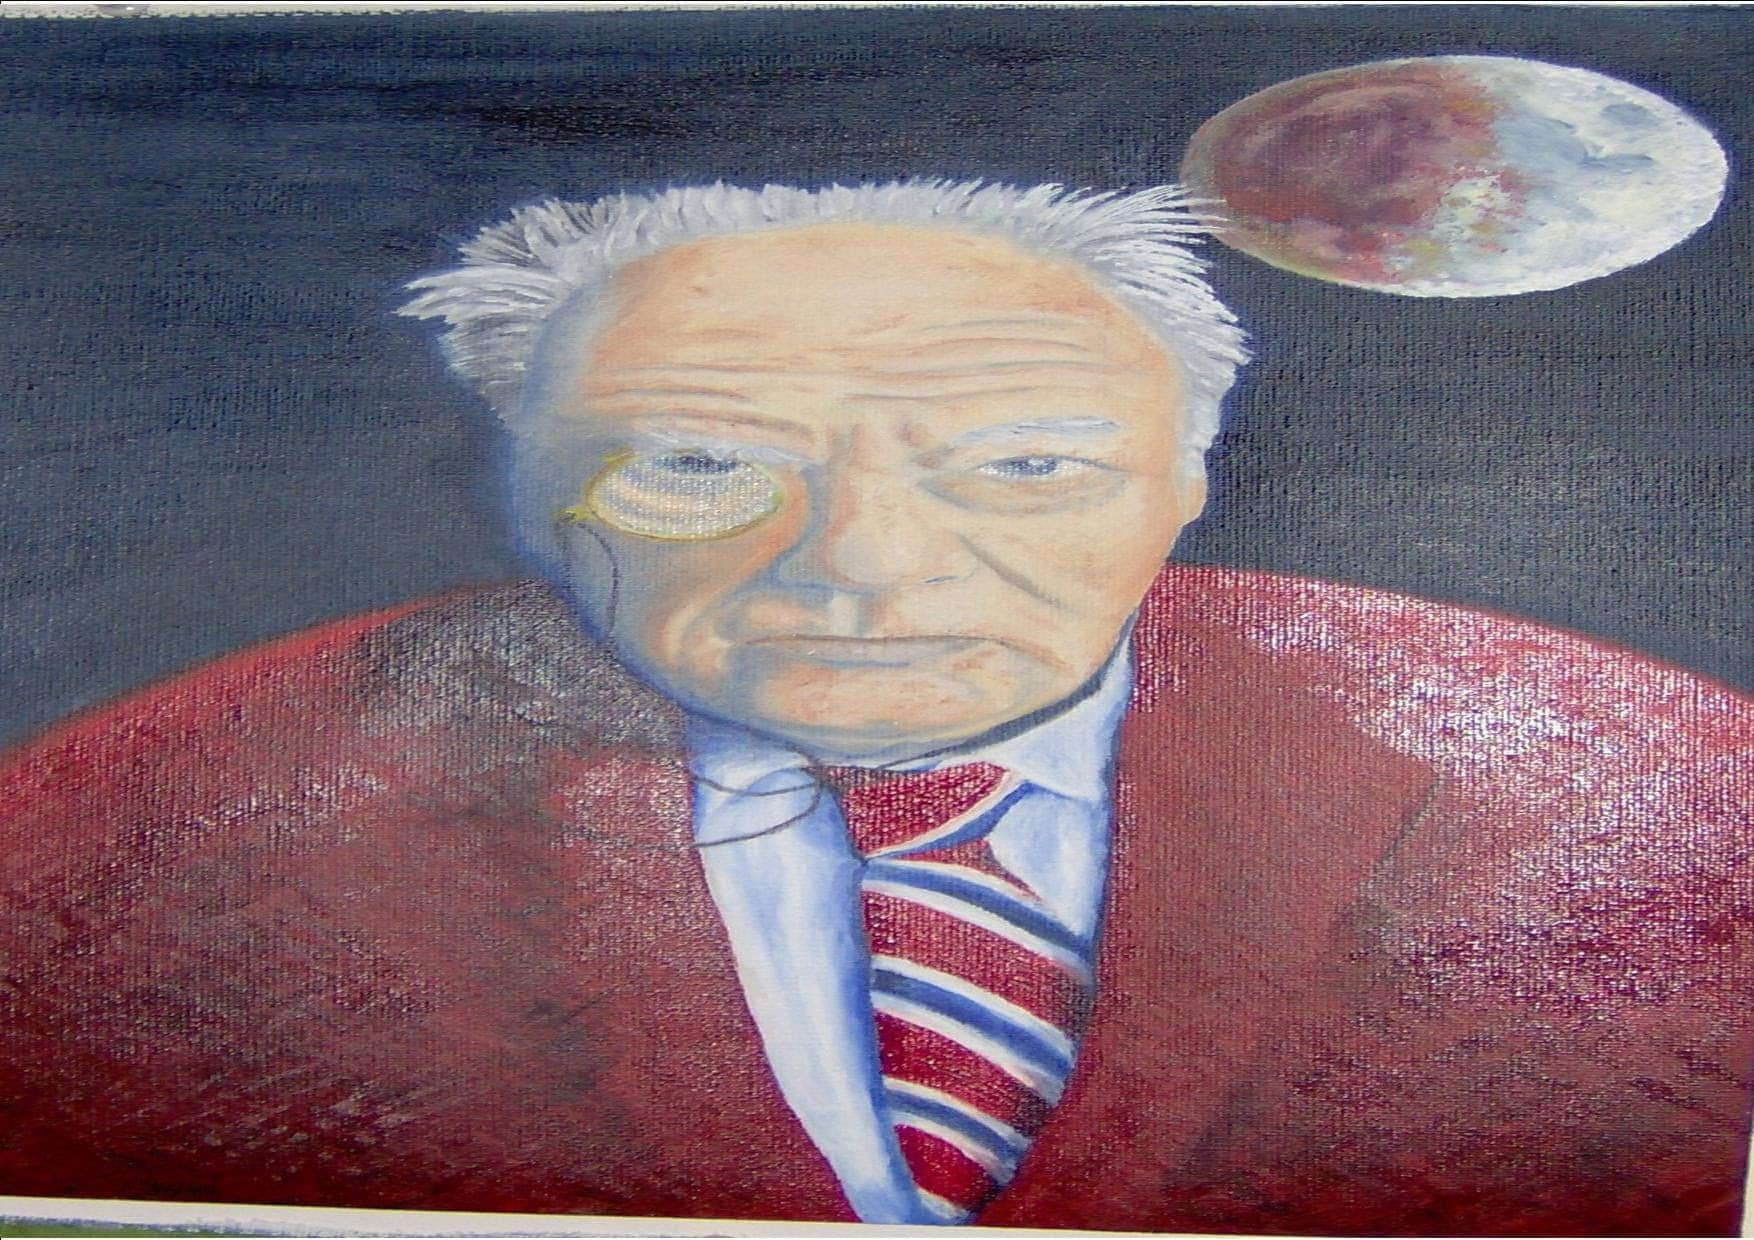 Tribute to Sir Patrick Moore who died today. 23